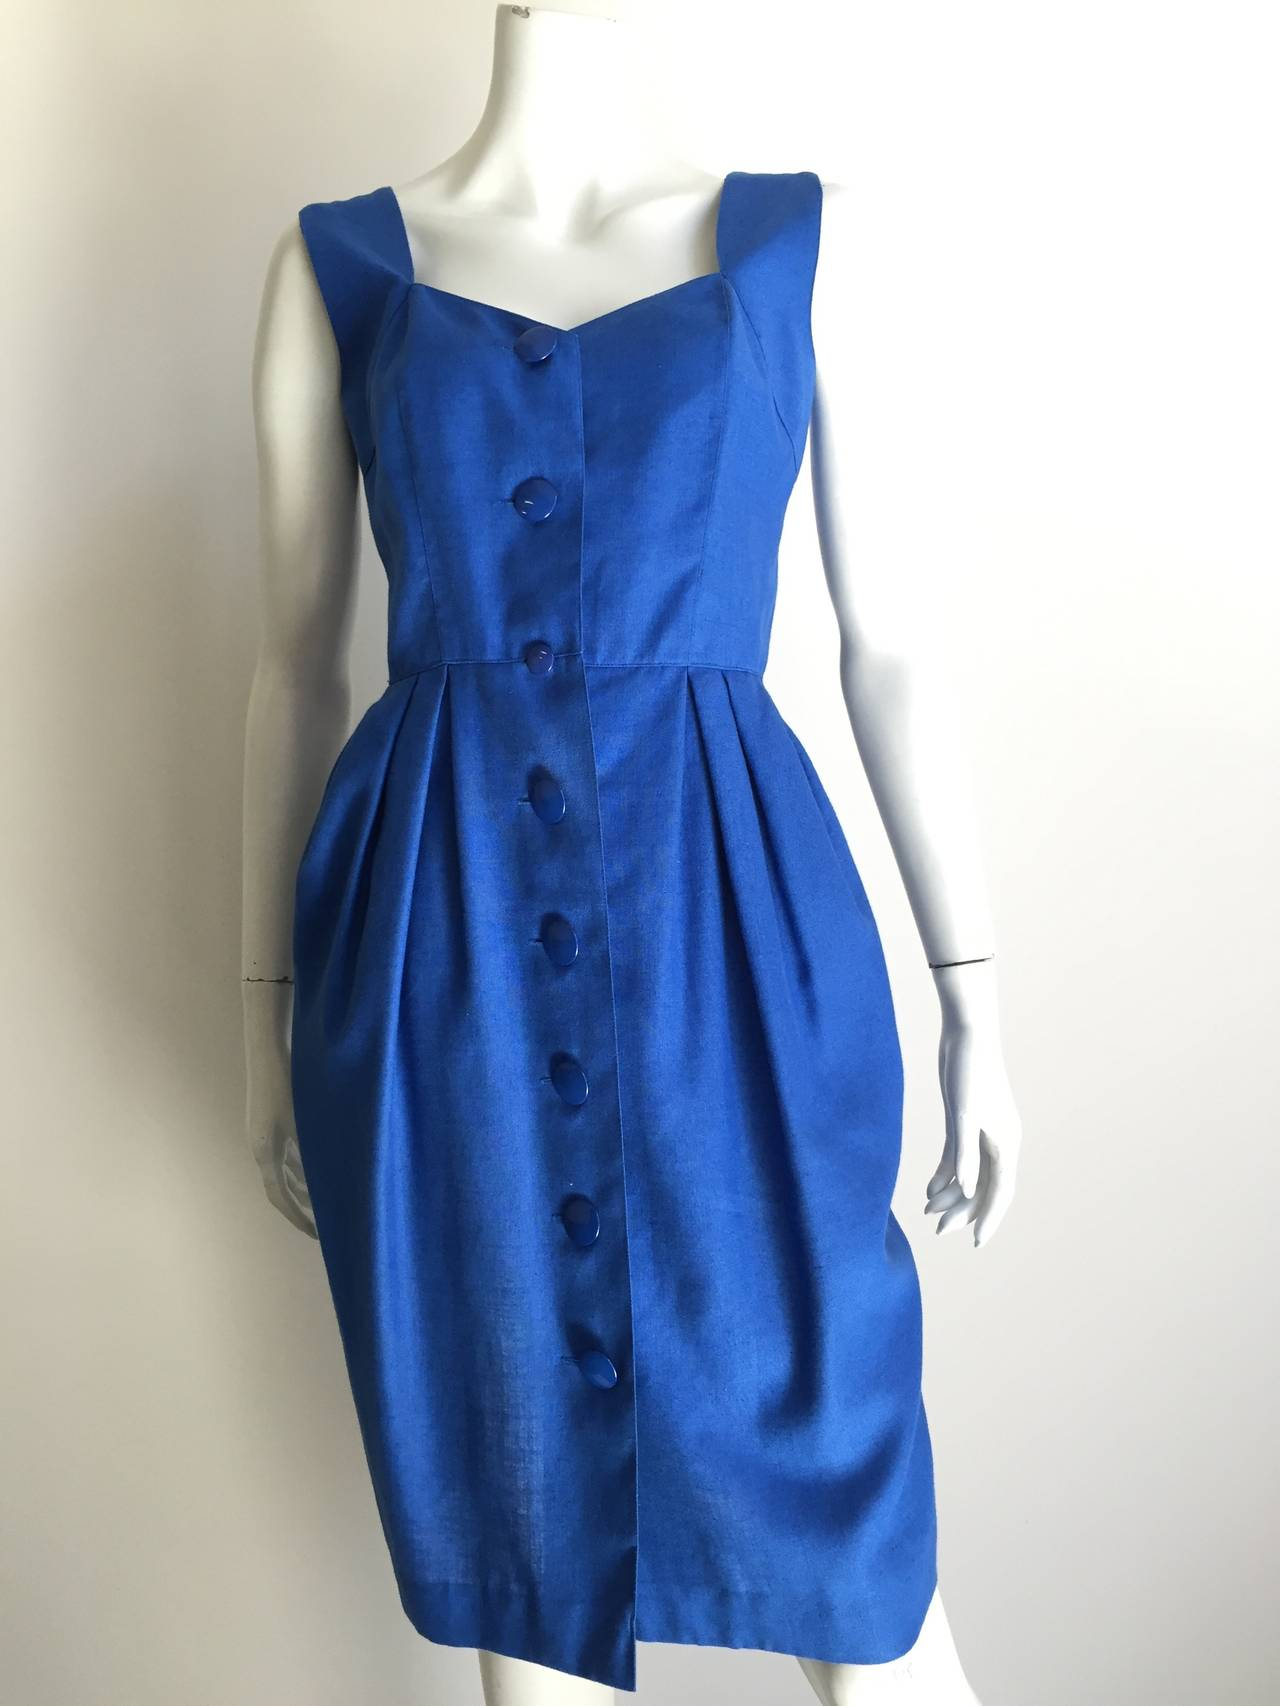 Guy Laroche Paris 80s blue dress with pockets size 6. 2